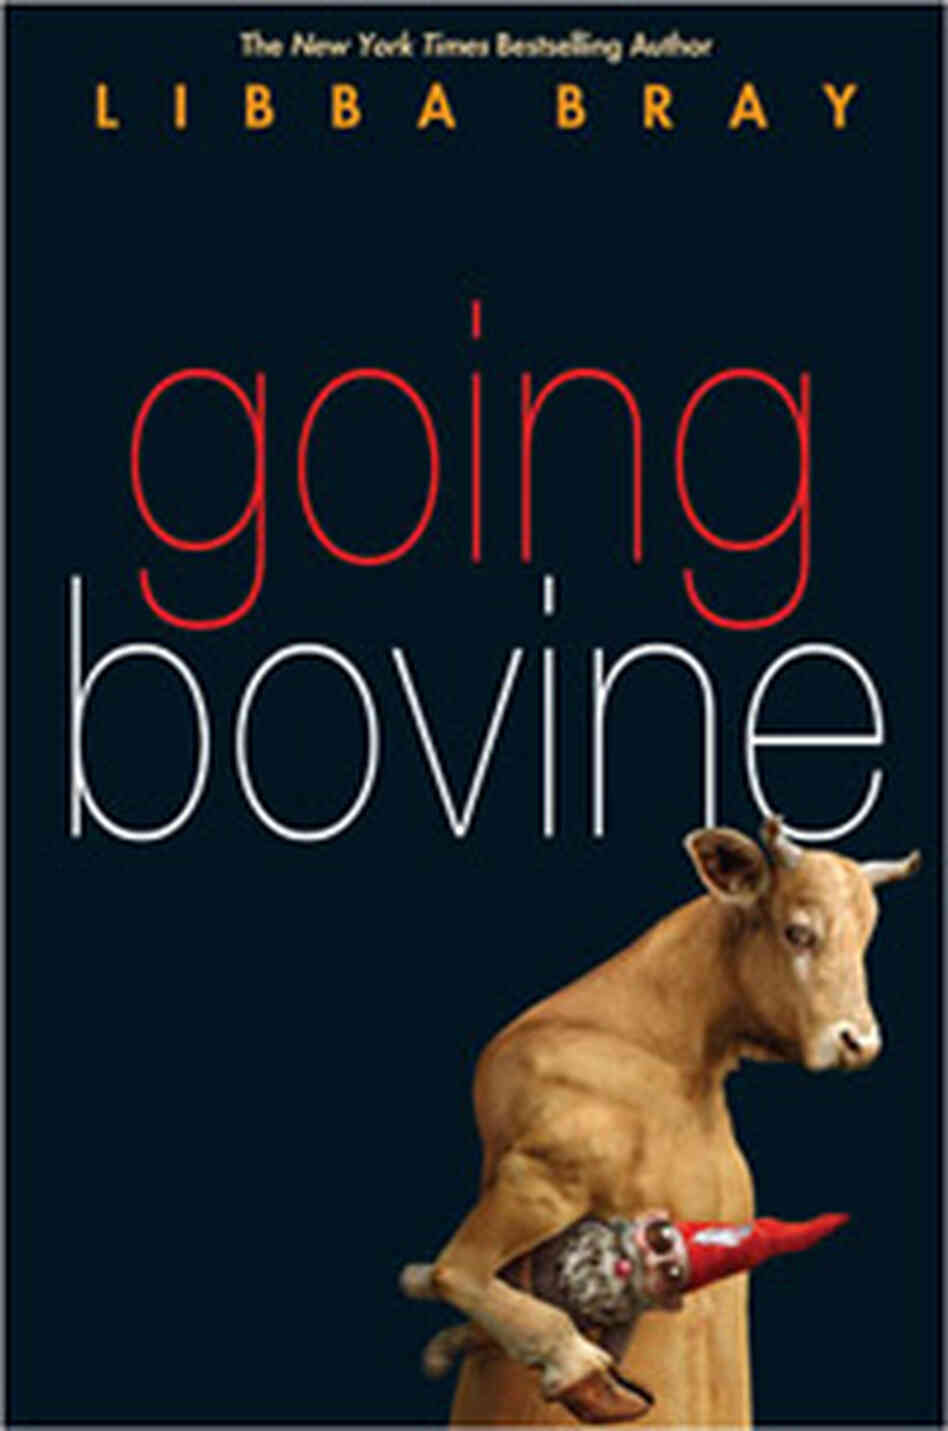 Custom: 'Going Bovine' by Libba Bray